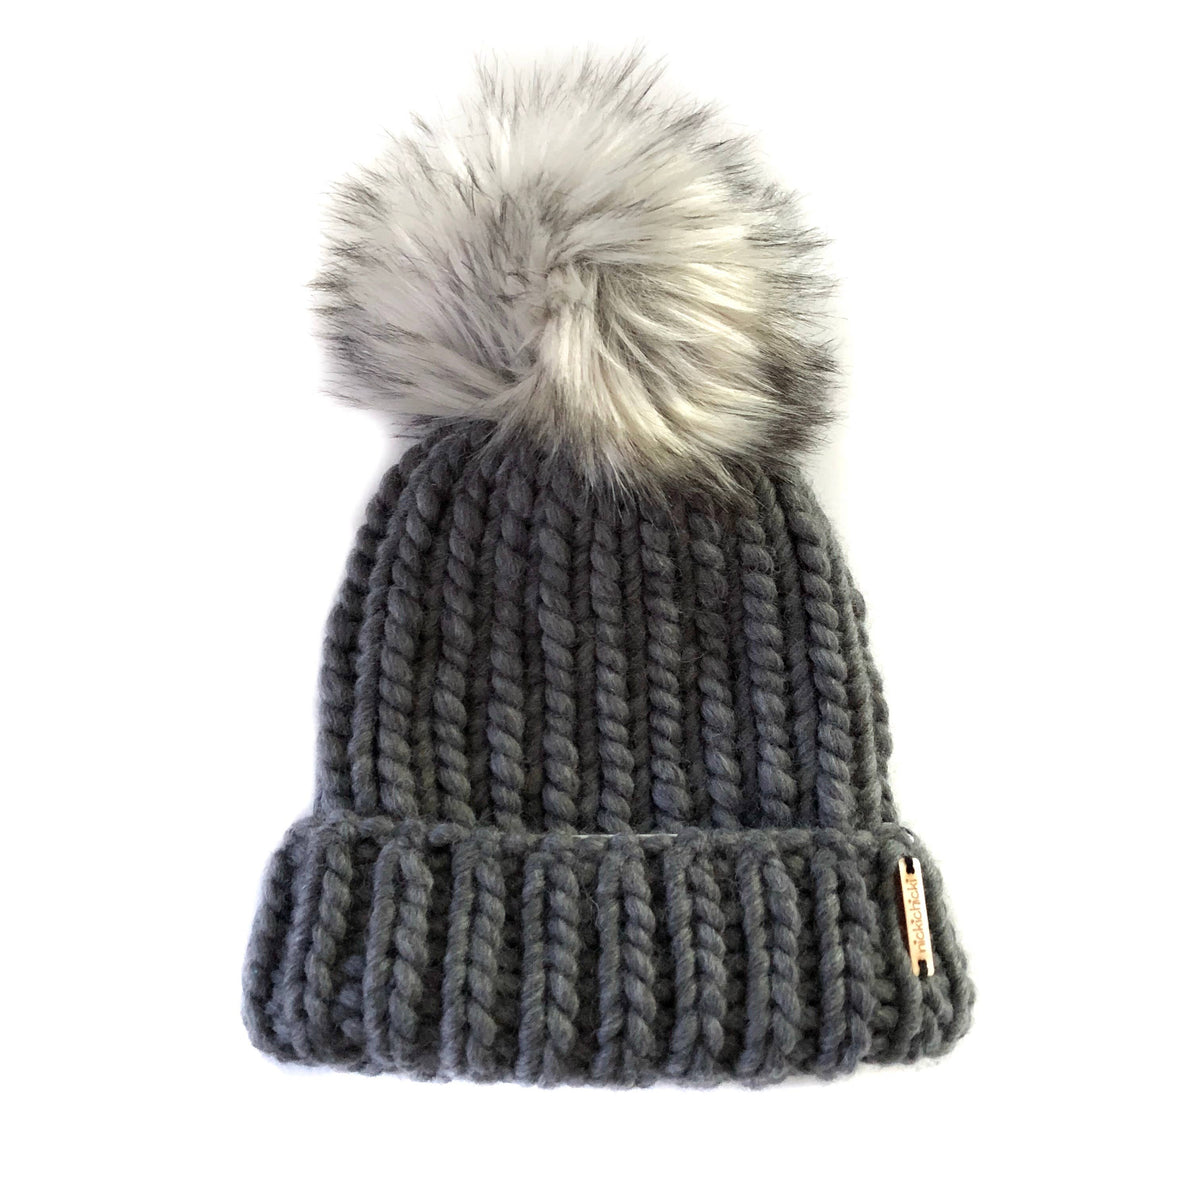 Faux Fur hat in Charcoal